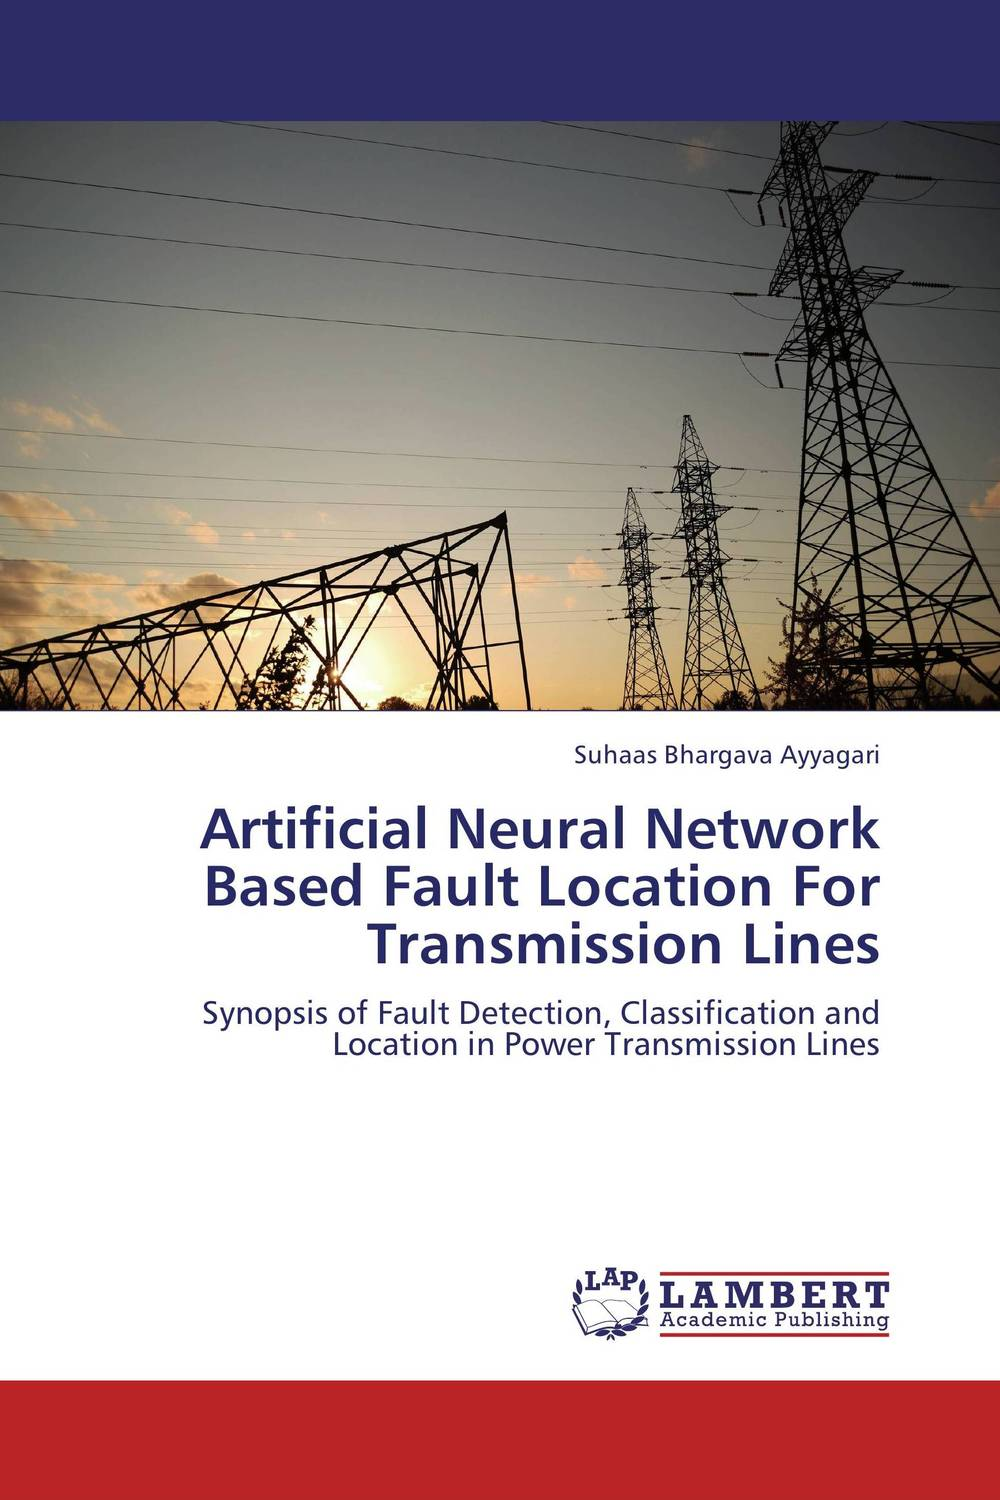 Artificial Neural Network Based Fault Location For Transmission Lines